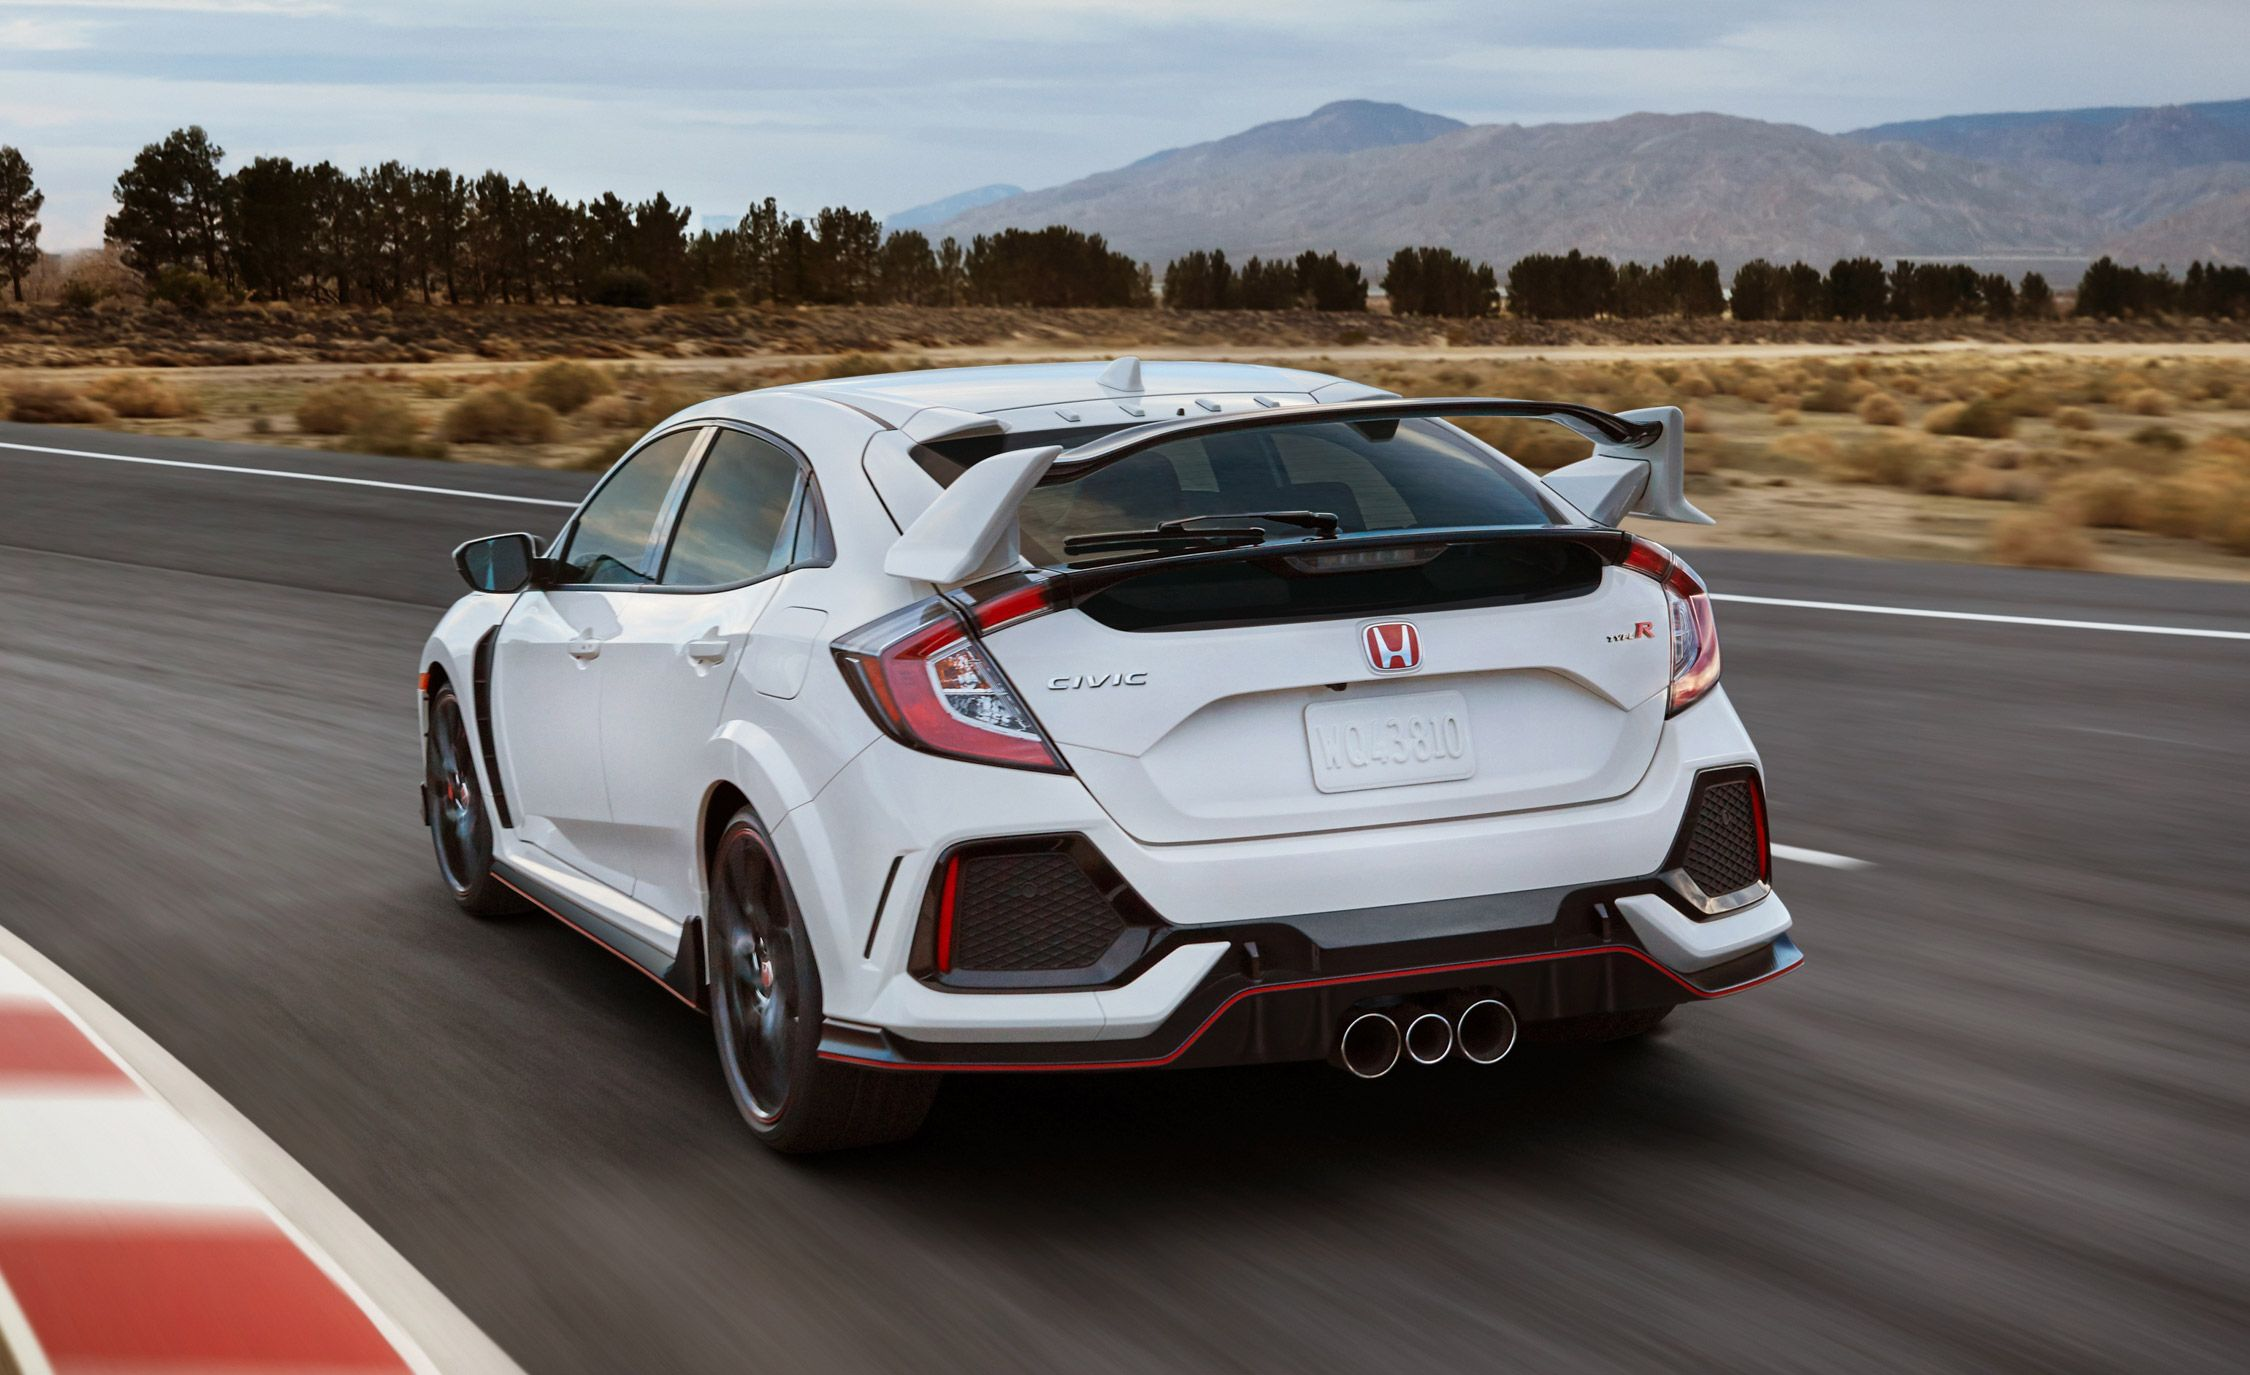 2017 Honda Civic Type R: A Manual Only, Hard Core Civic With